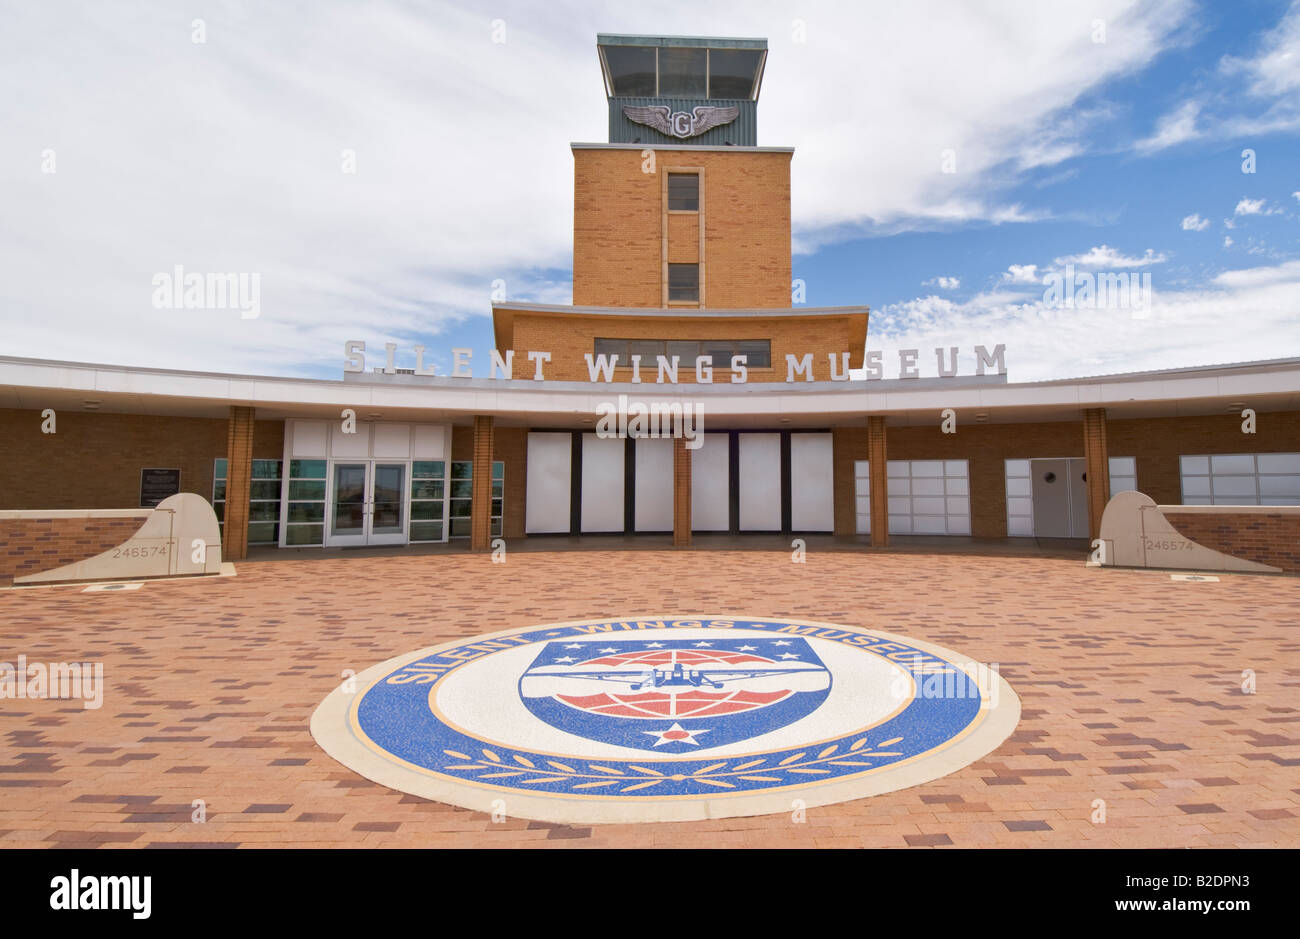 Texas Lubbock Silent Wings Museum dedicated to World War II glider operations - Stock Image